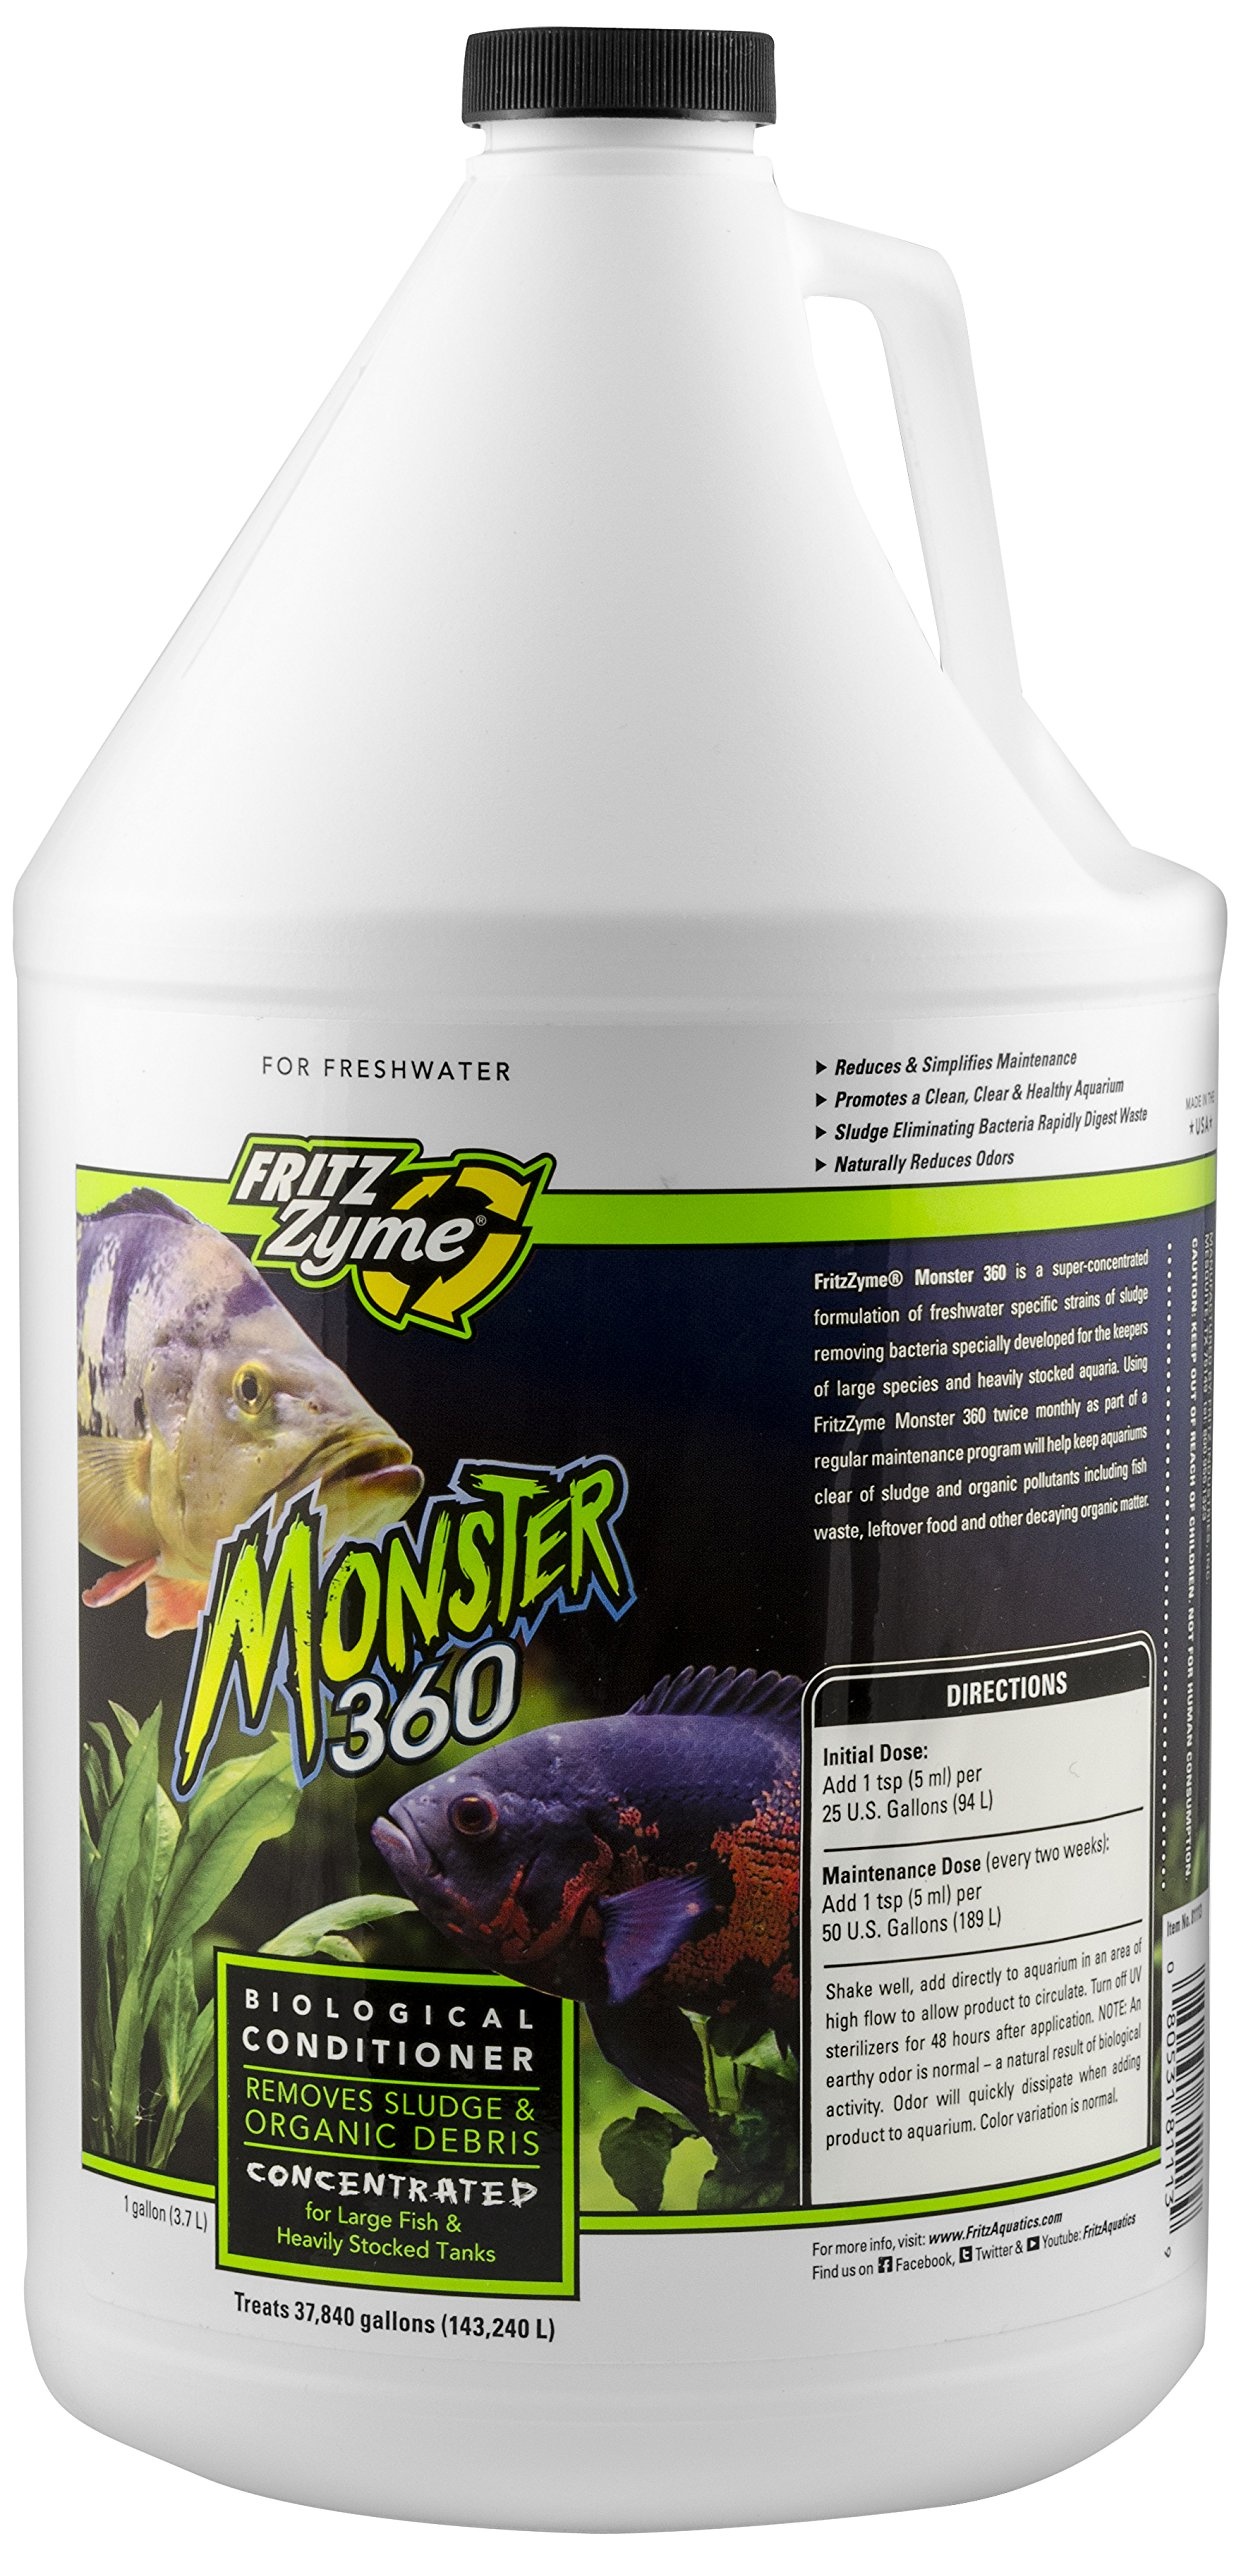 Fritz Aquatics 75128 FritzZyme Monster 360 Concentrated Biological Conditioner for Fresh Water Aquariums, 1-Gallon